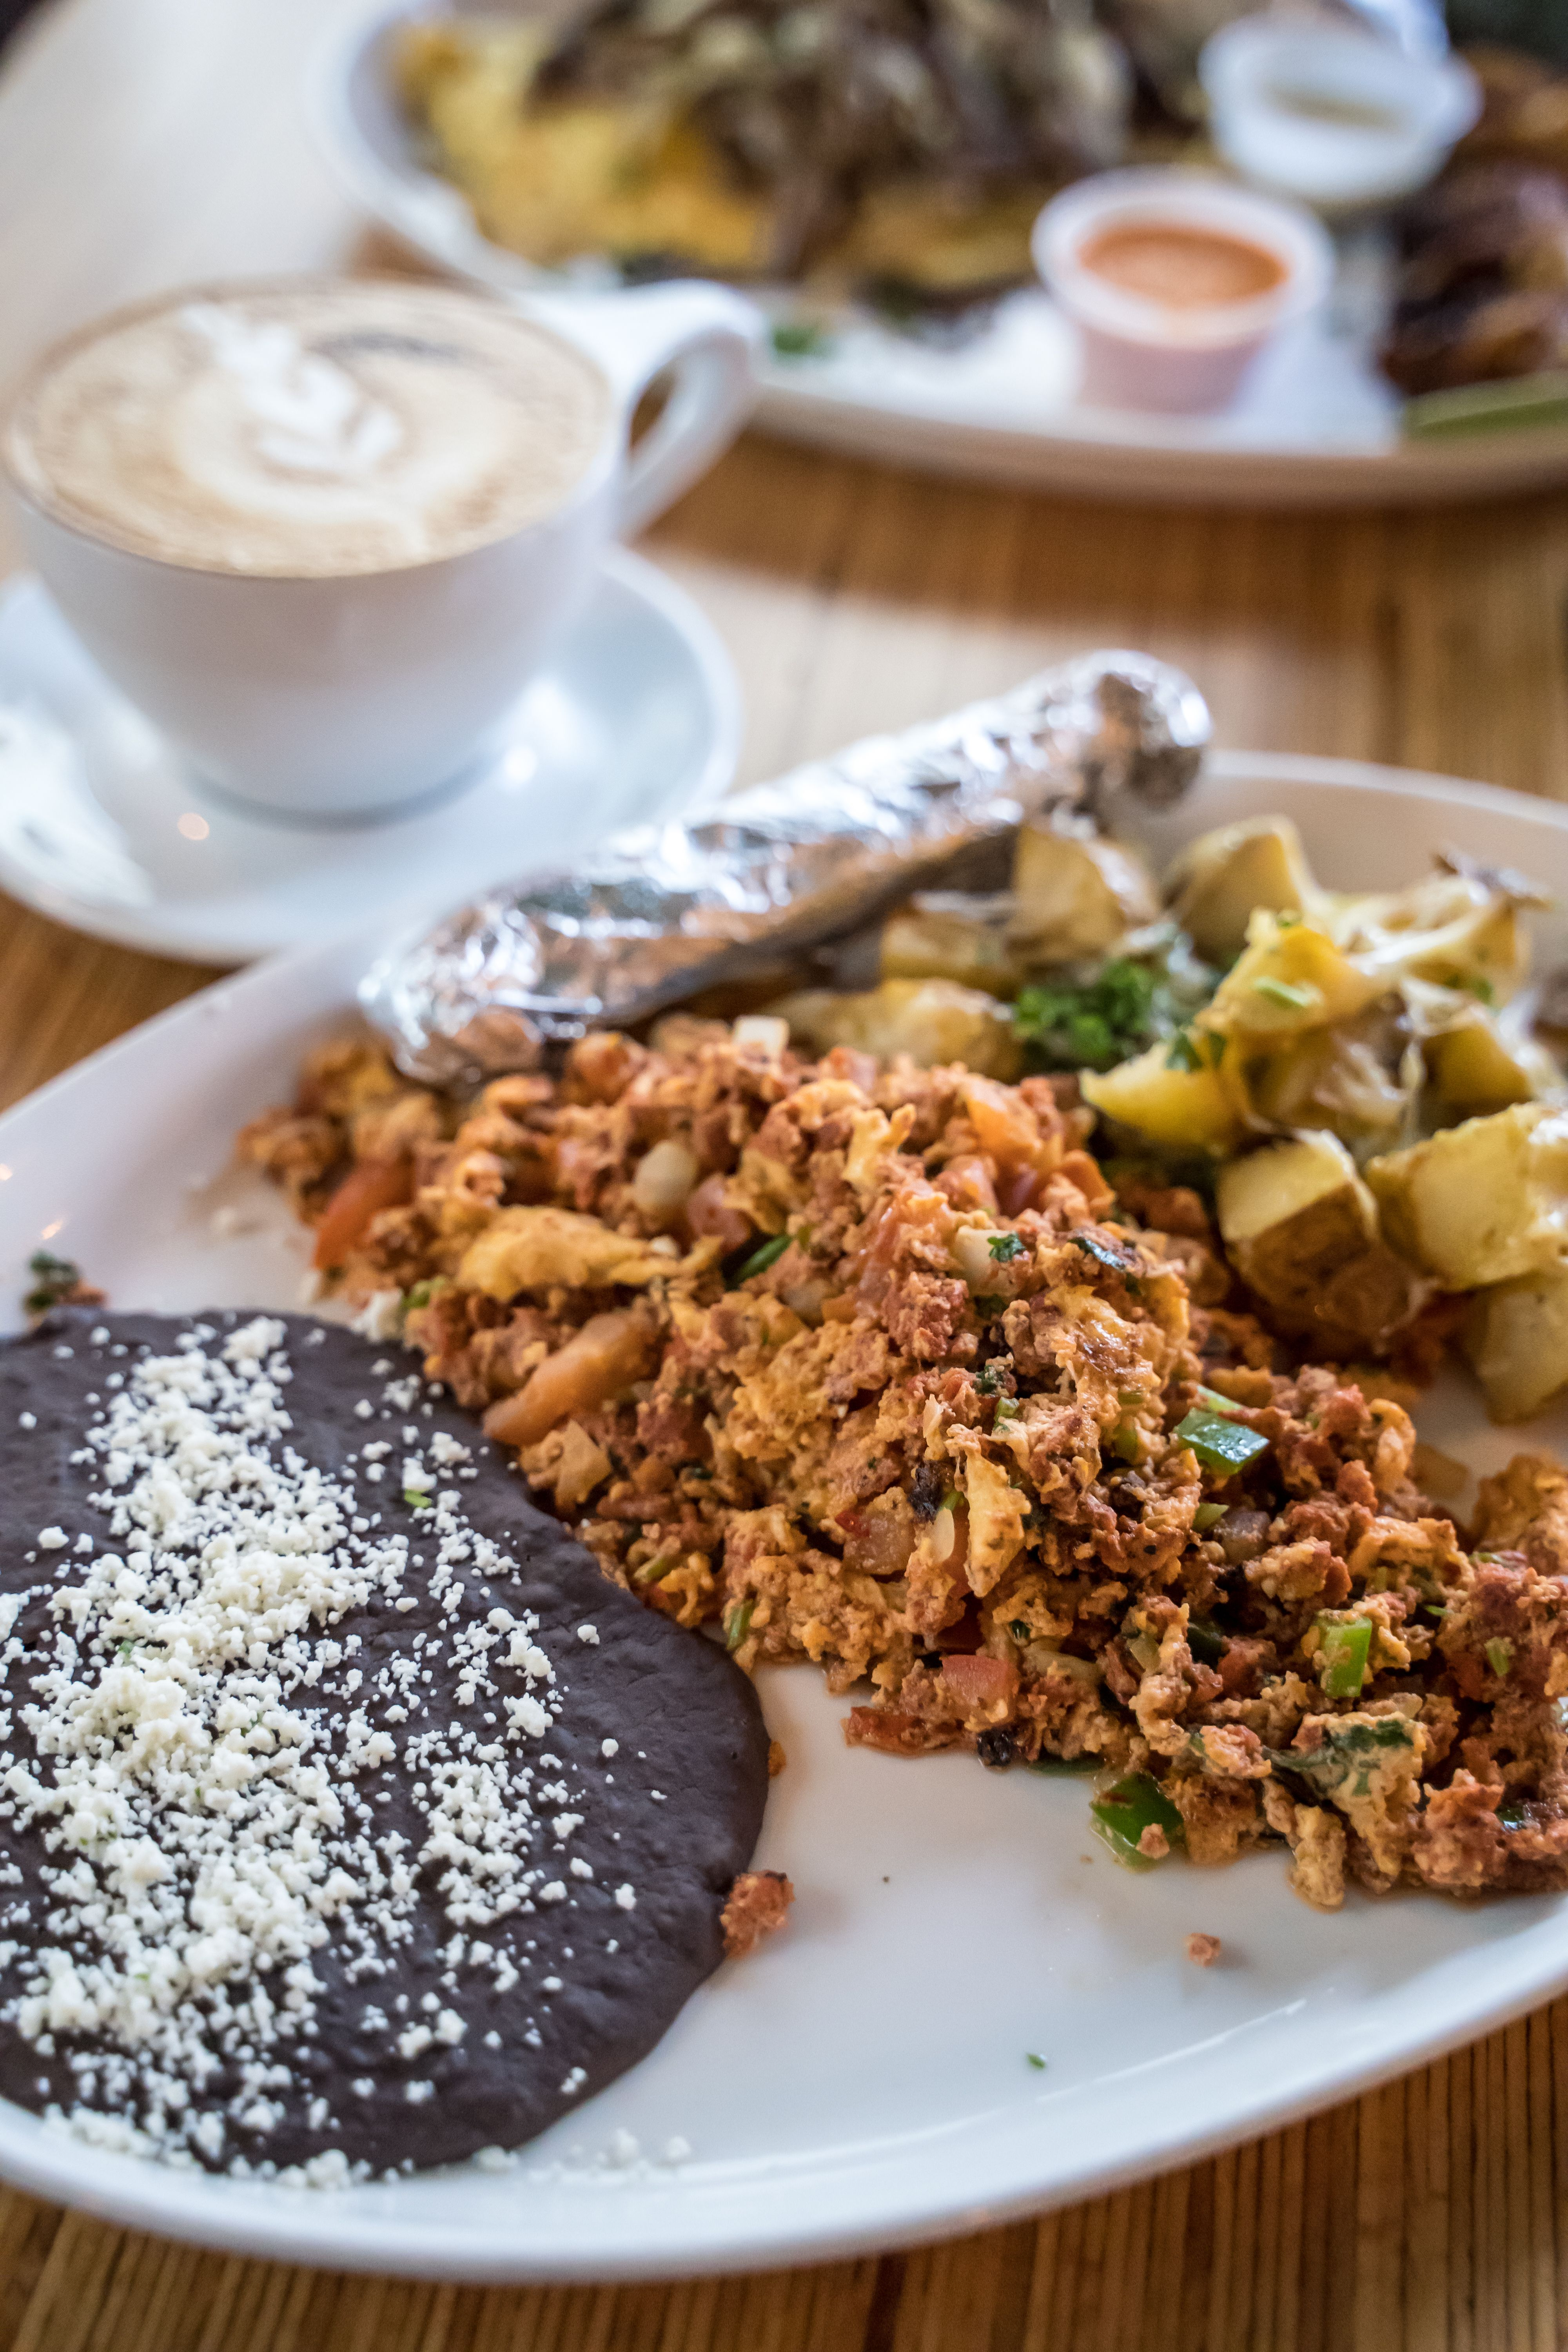 Cafe Kacao In 2020 Homemade Recipes Home Cooking Restaurants In Okc